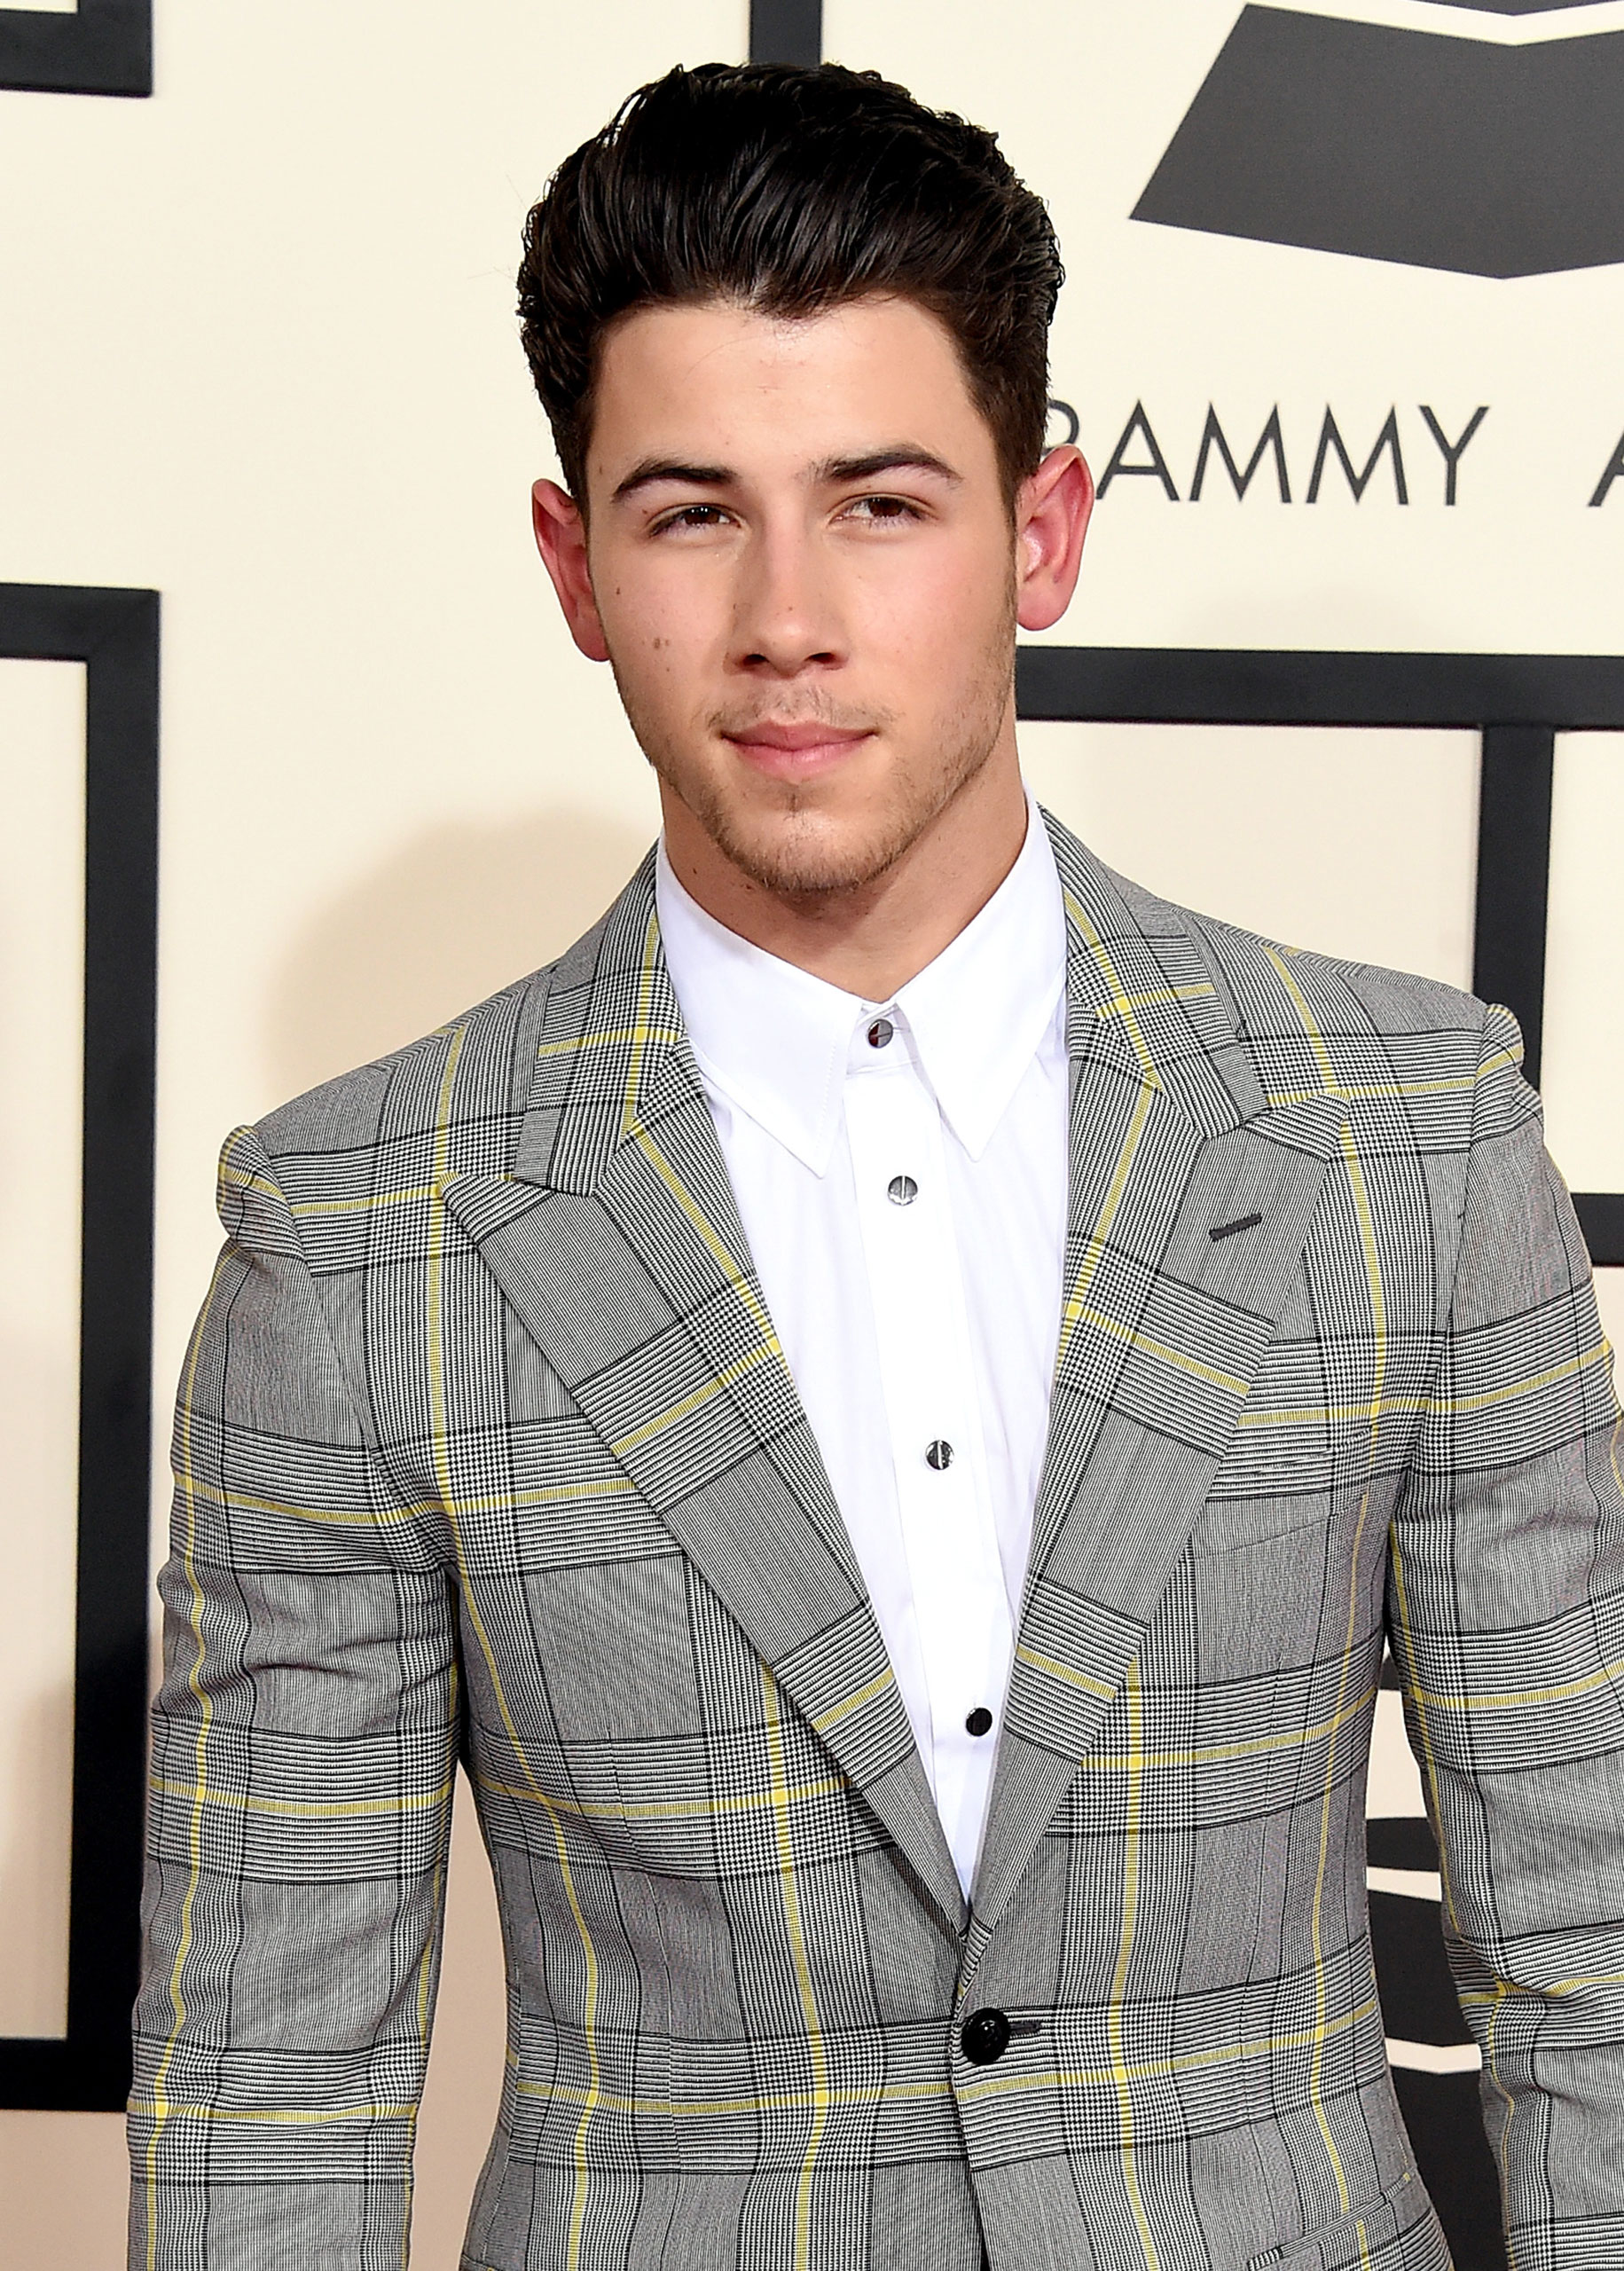 Nick Jonas attends attends the 57th Annual Grammy Awards at the Staples Center on Feb. 8, 2015 in Los Angeles, Calif.